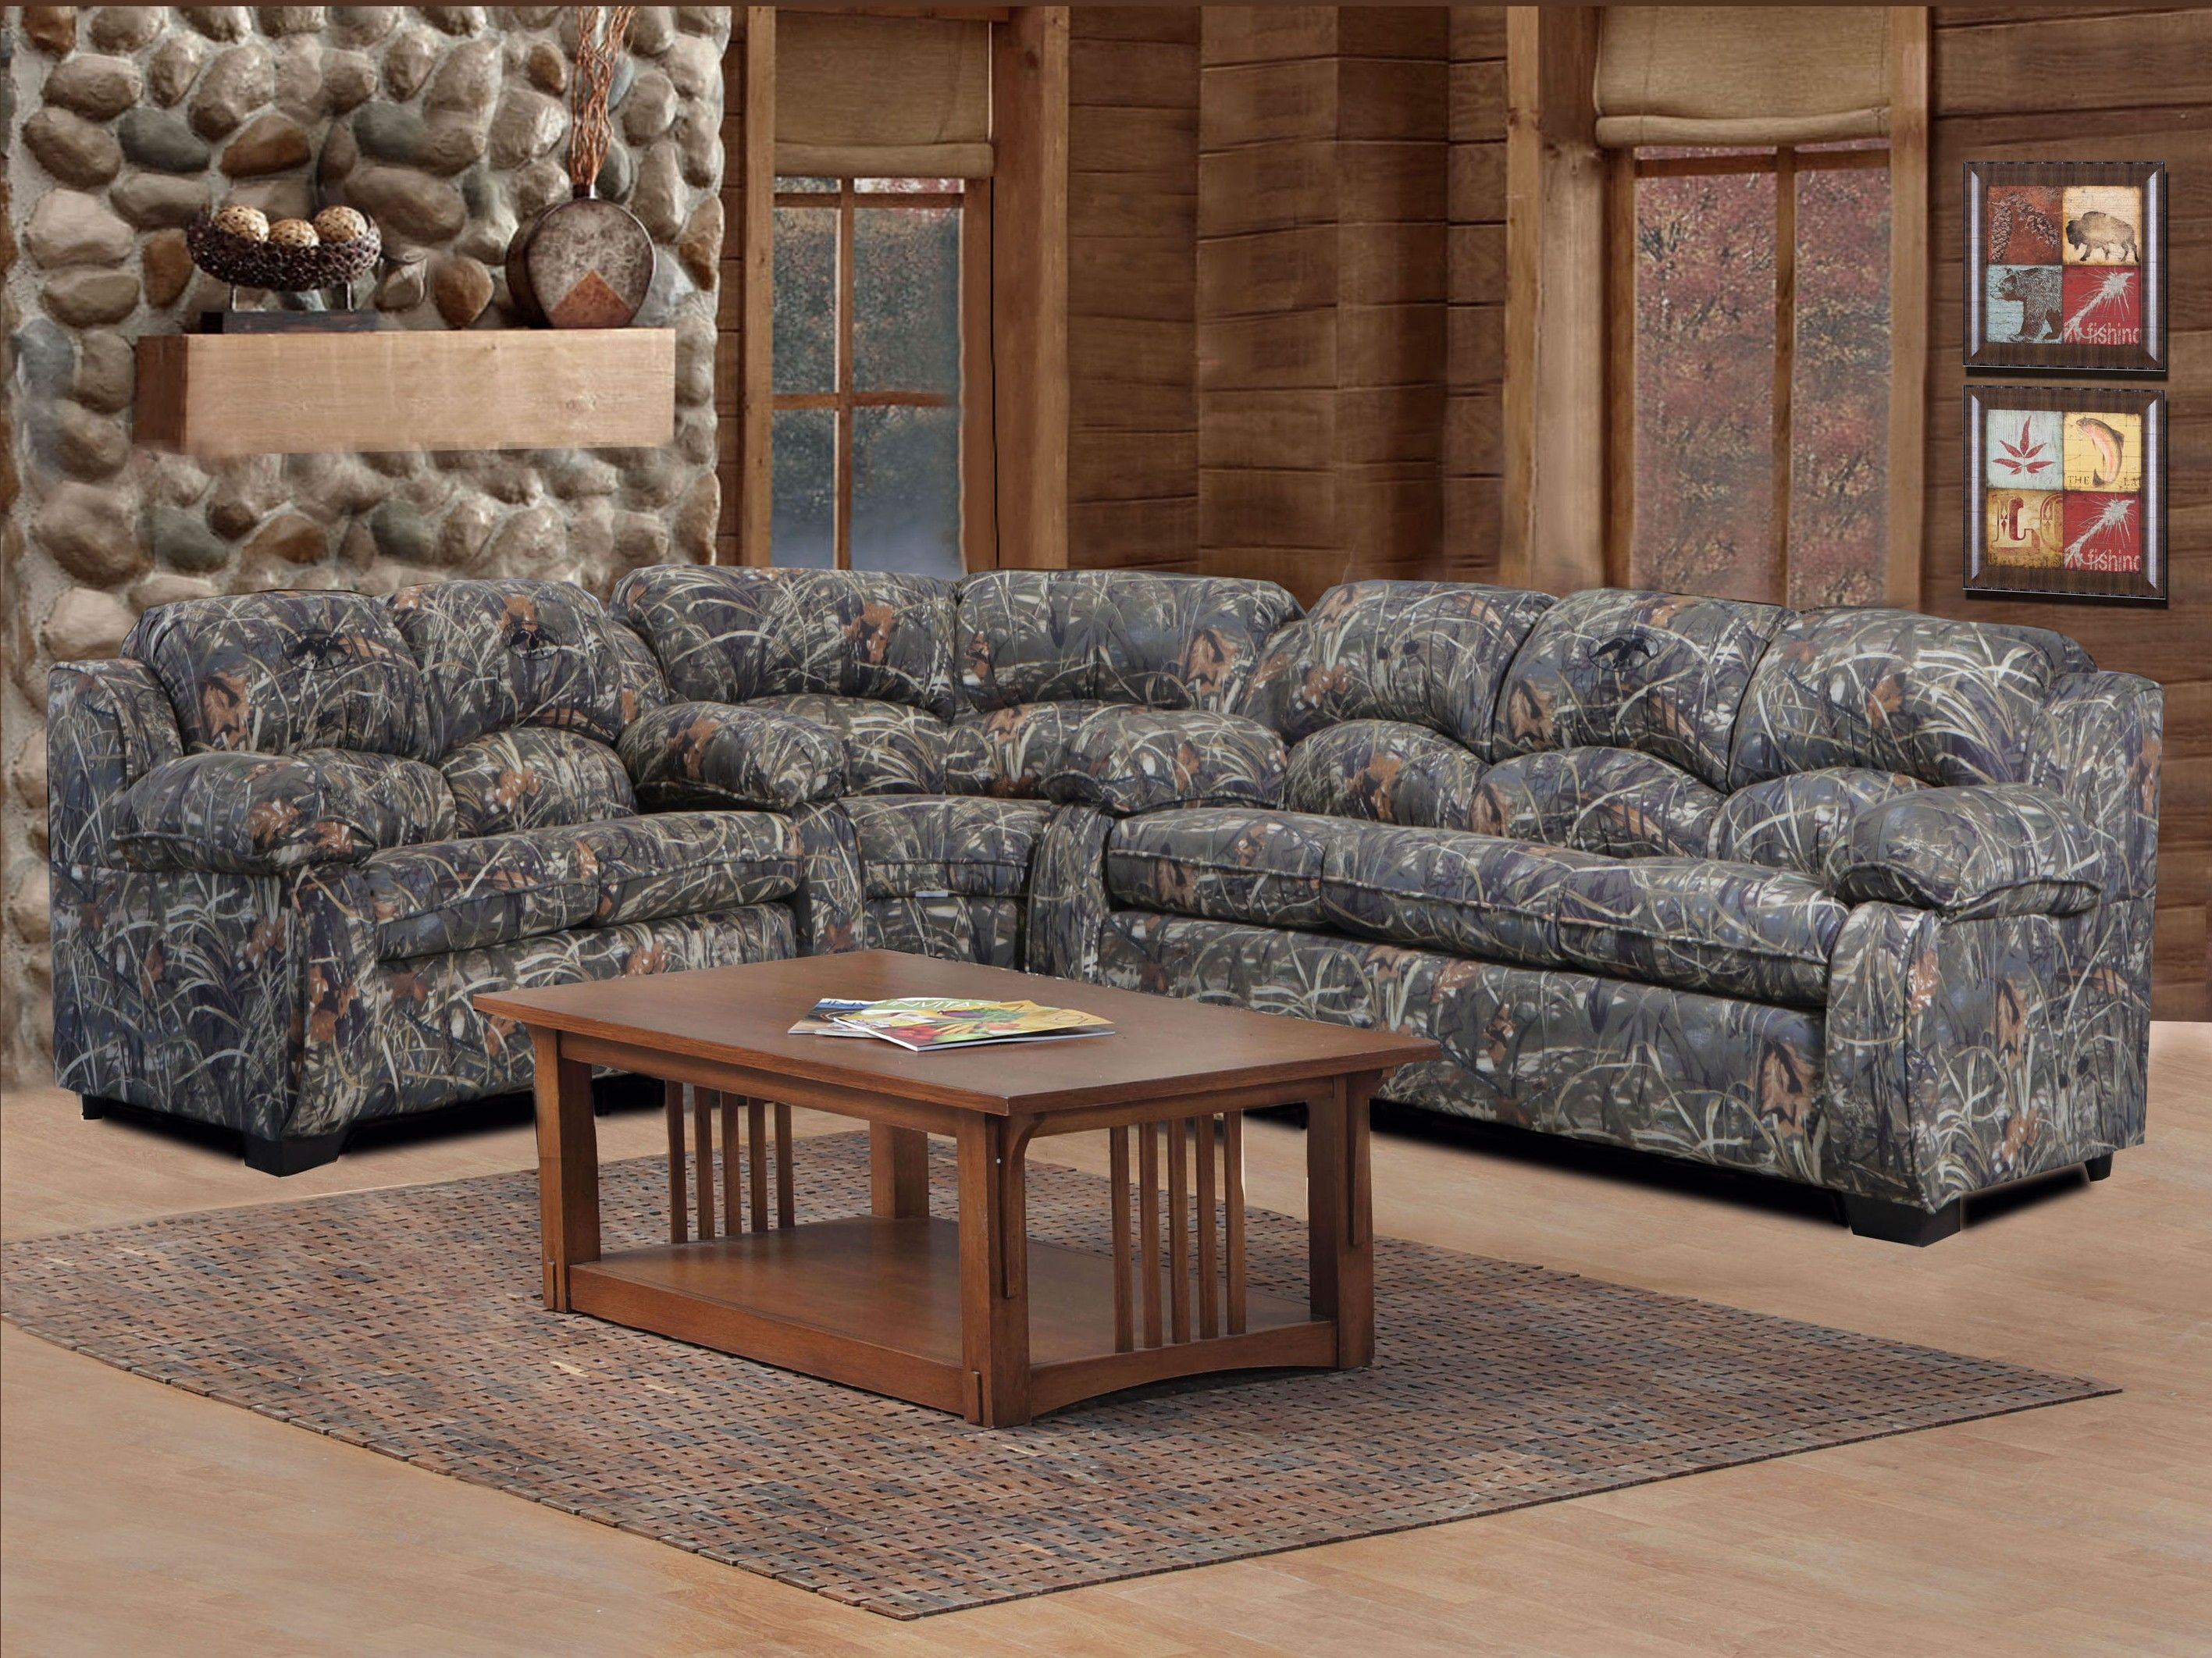 Best Duck Commander Sectional 3 Piece Sofa Loveseat And Wedge 640 x 480